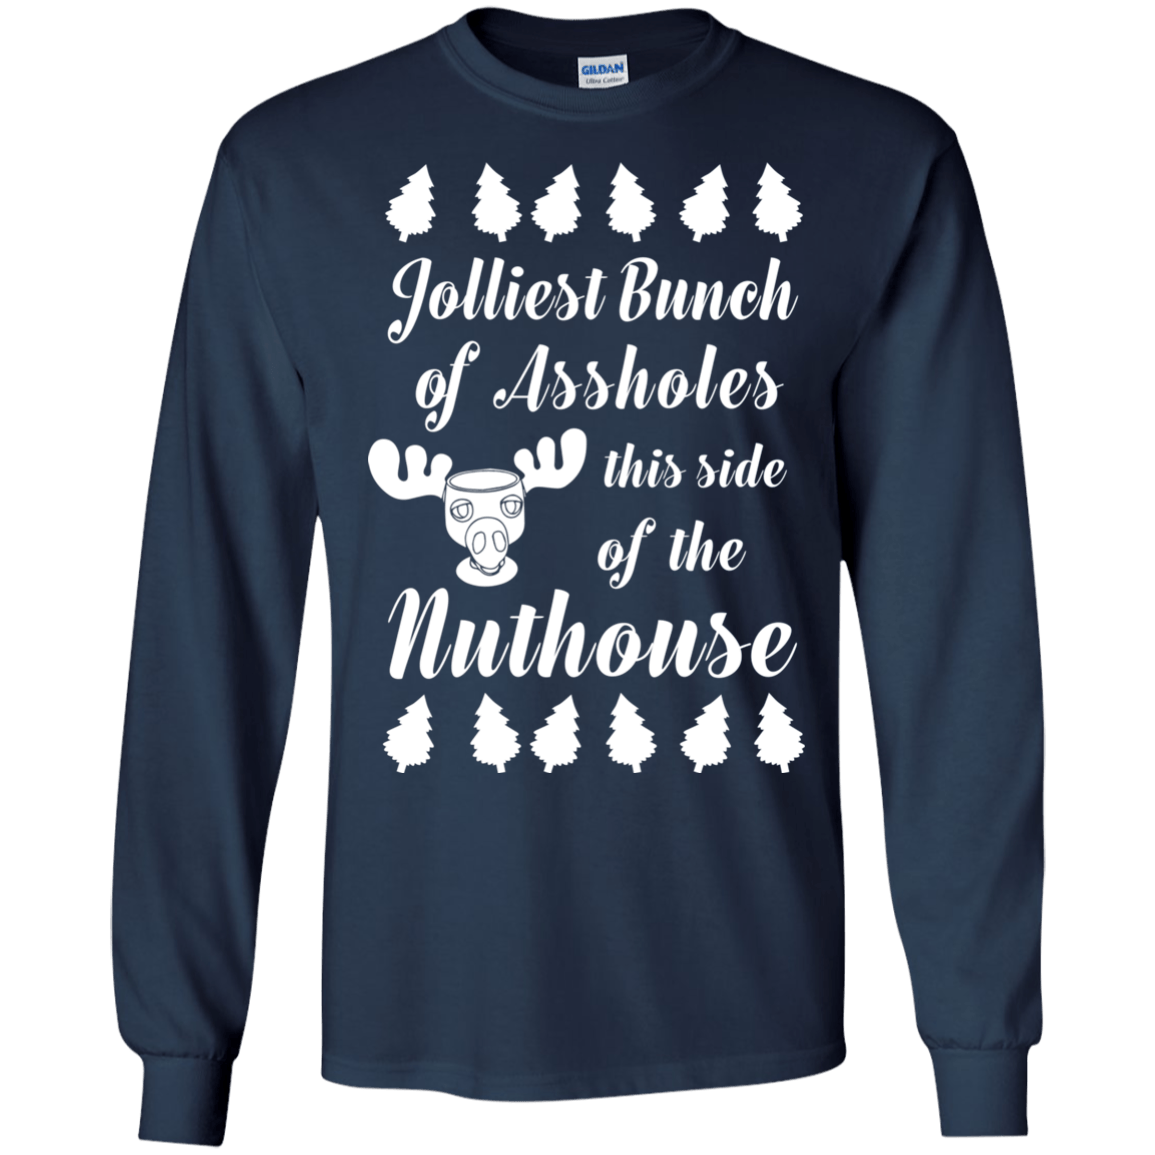 Christmas Vacation Quotes Jolliest Bunch Of: Jolliest Bunch Of Asshole This Side Of The Nuthouse